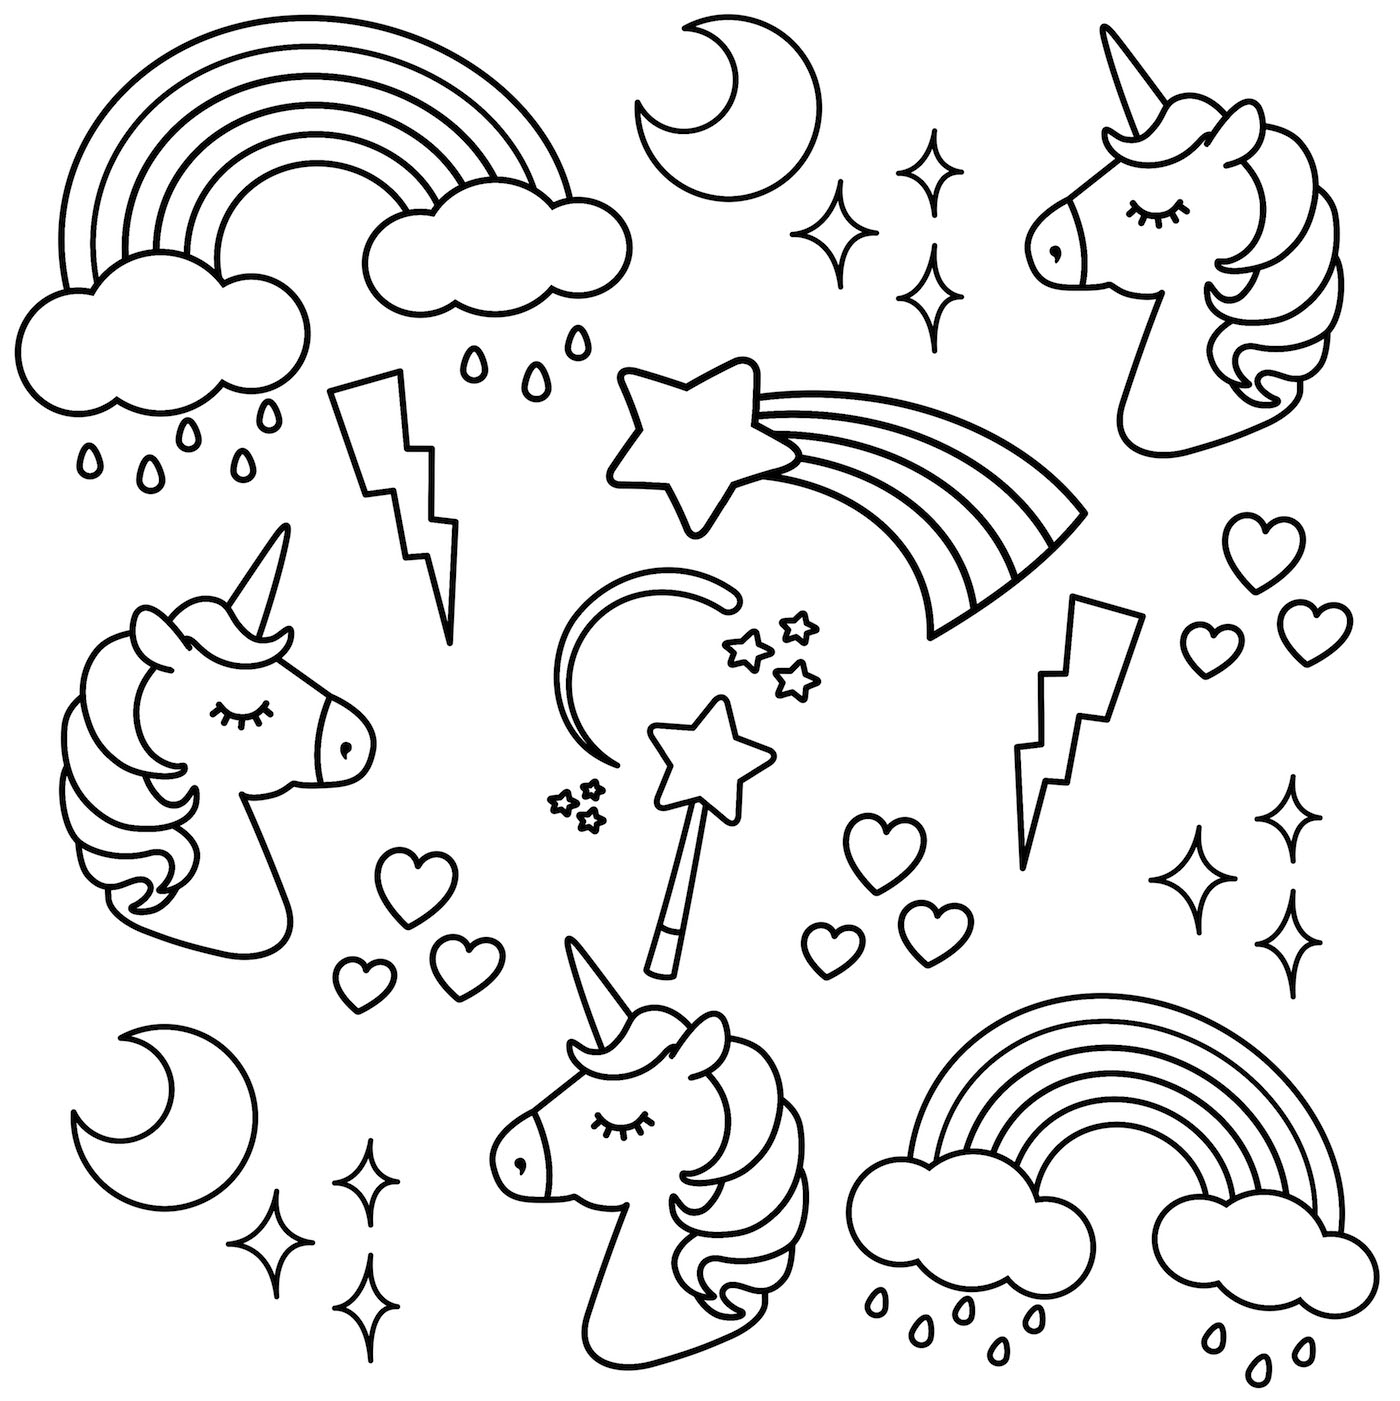 coloring pictures unicorn adorable unicorn coloring pages for girls and adults updated pictures unicorn coloring